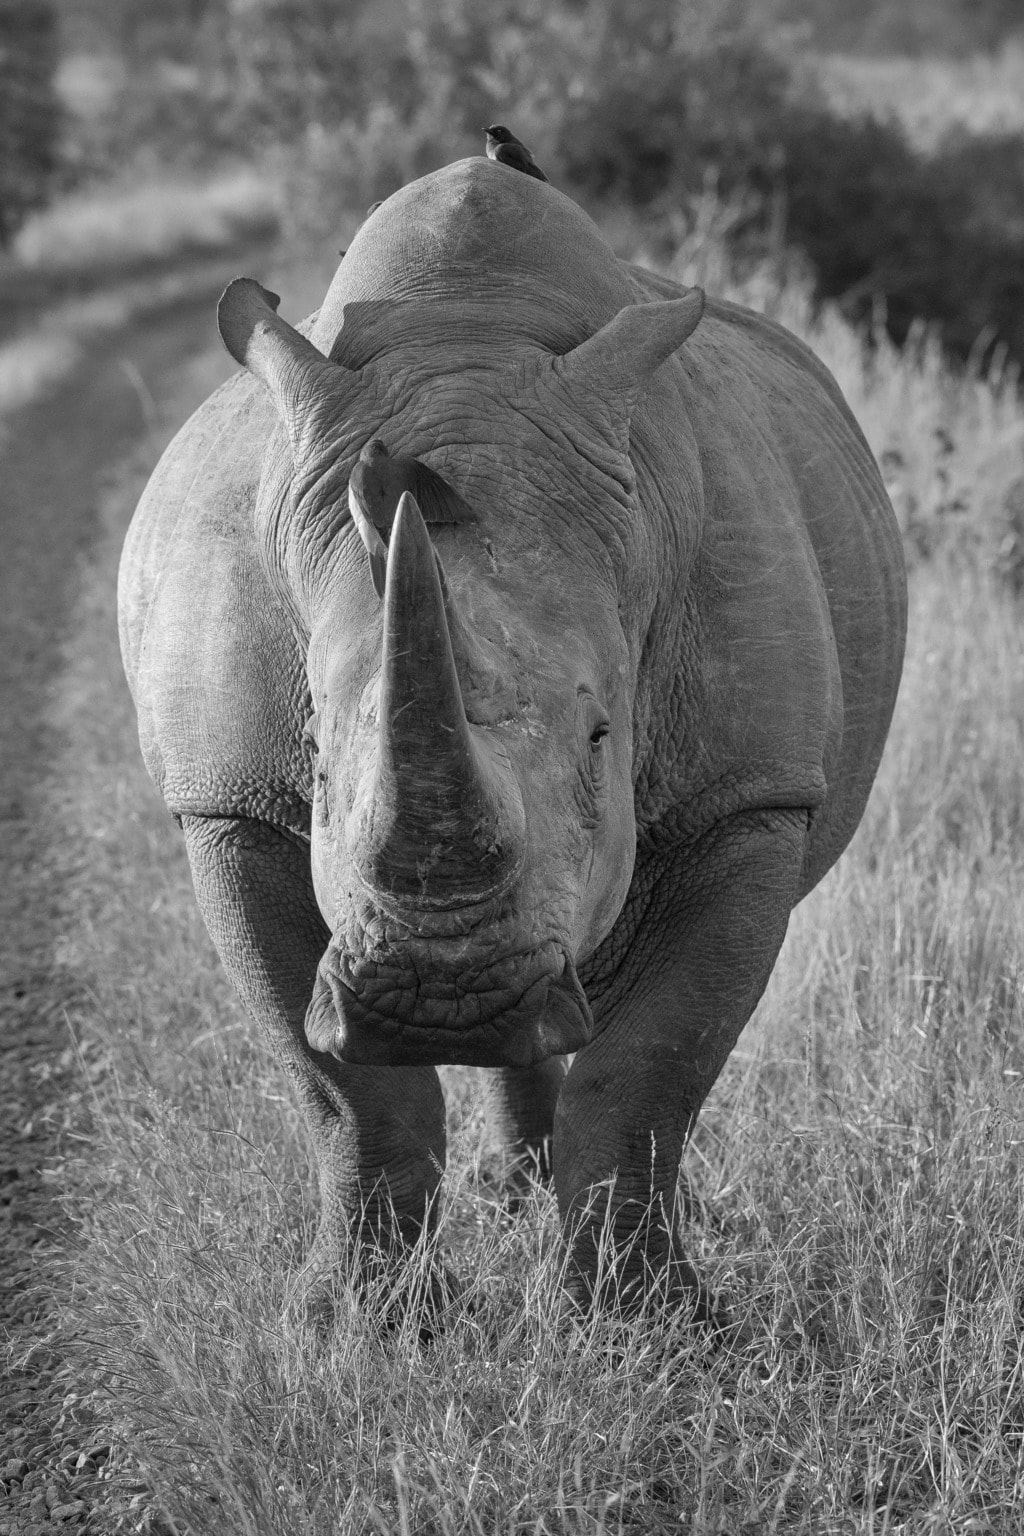 Rhino in Black and White via Stacy White